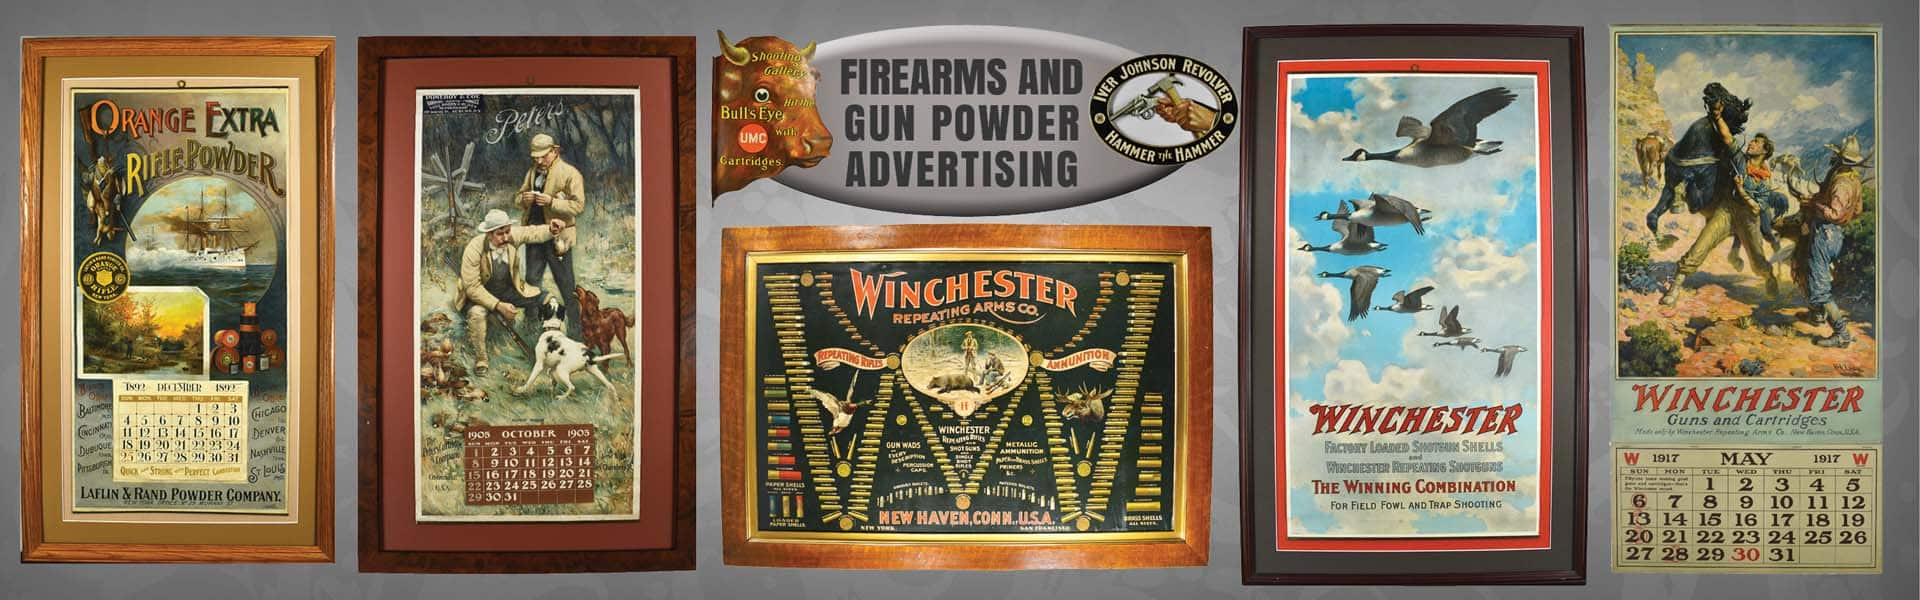 Firearms_Gun Powder Adv